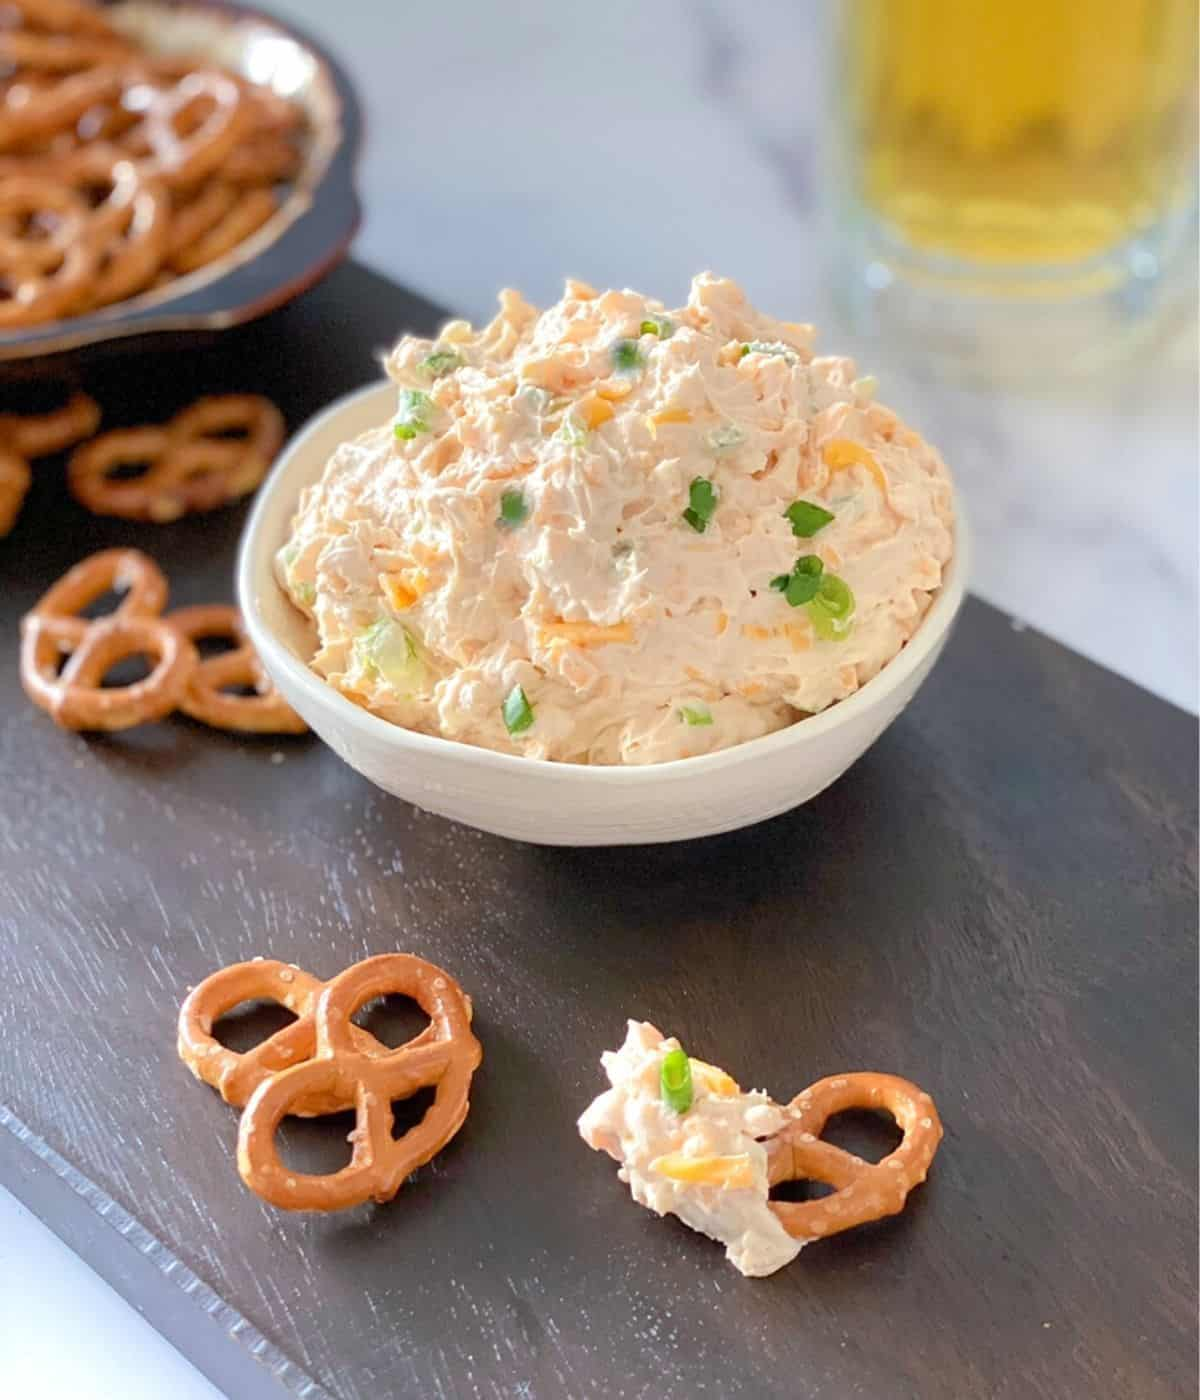 Cheddar cheese beer dip for pretzels served cold in a bowl.